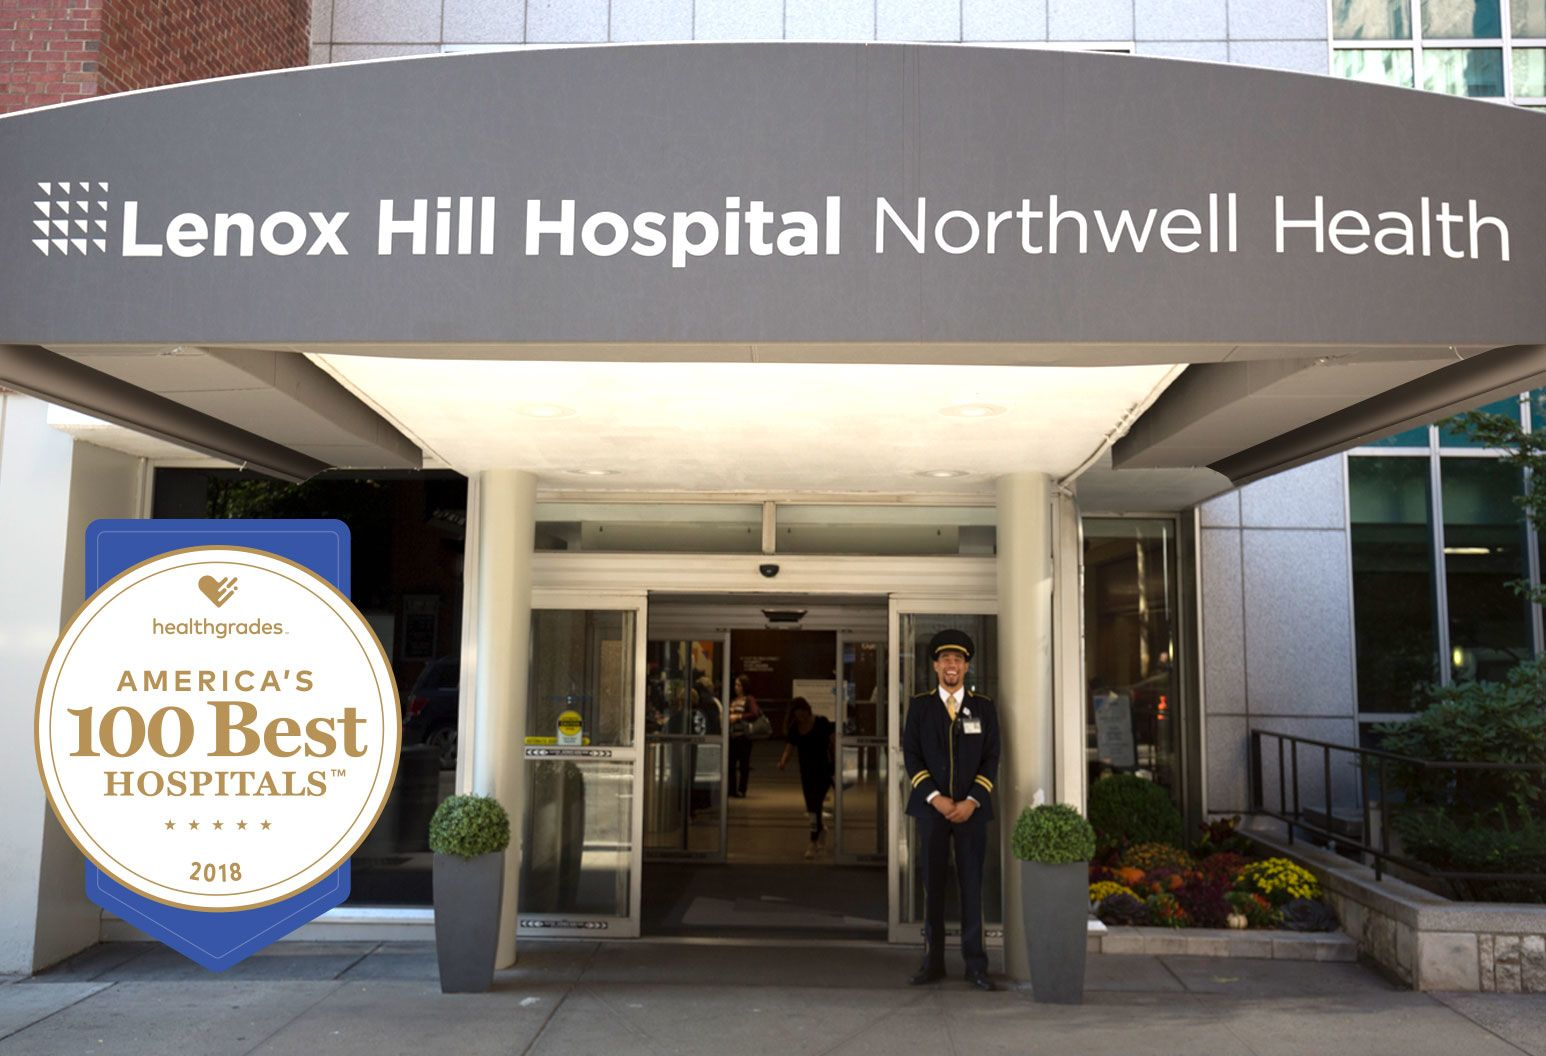 About us - Lenox Hill Hospital | Northwell Health